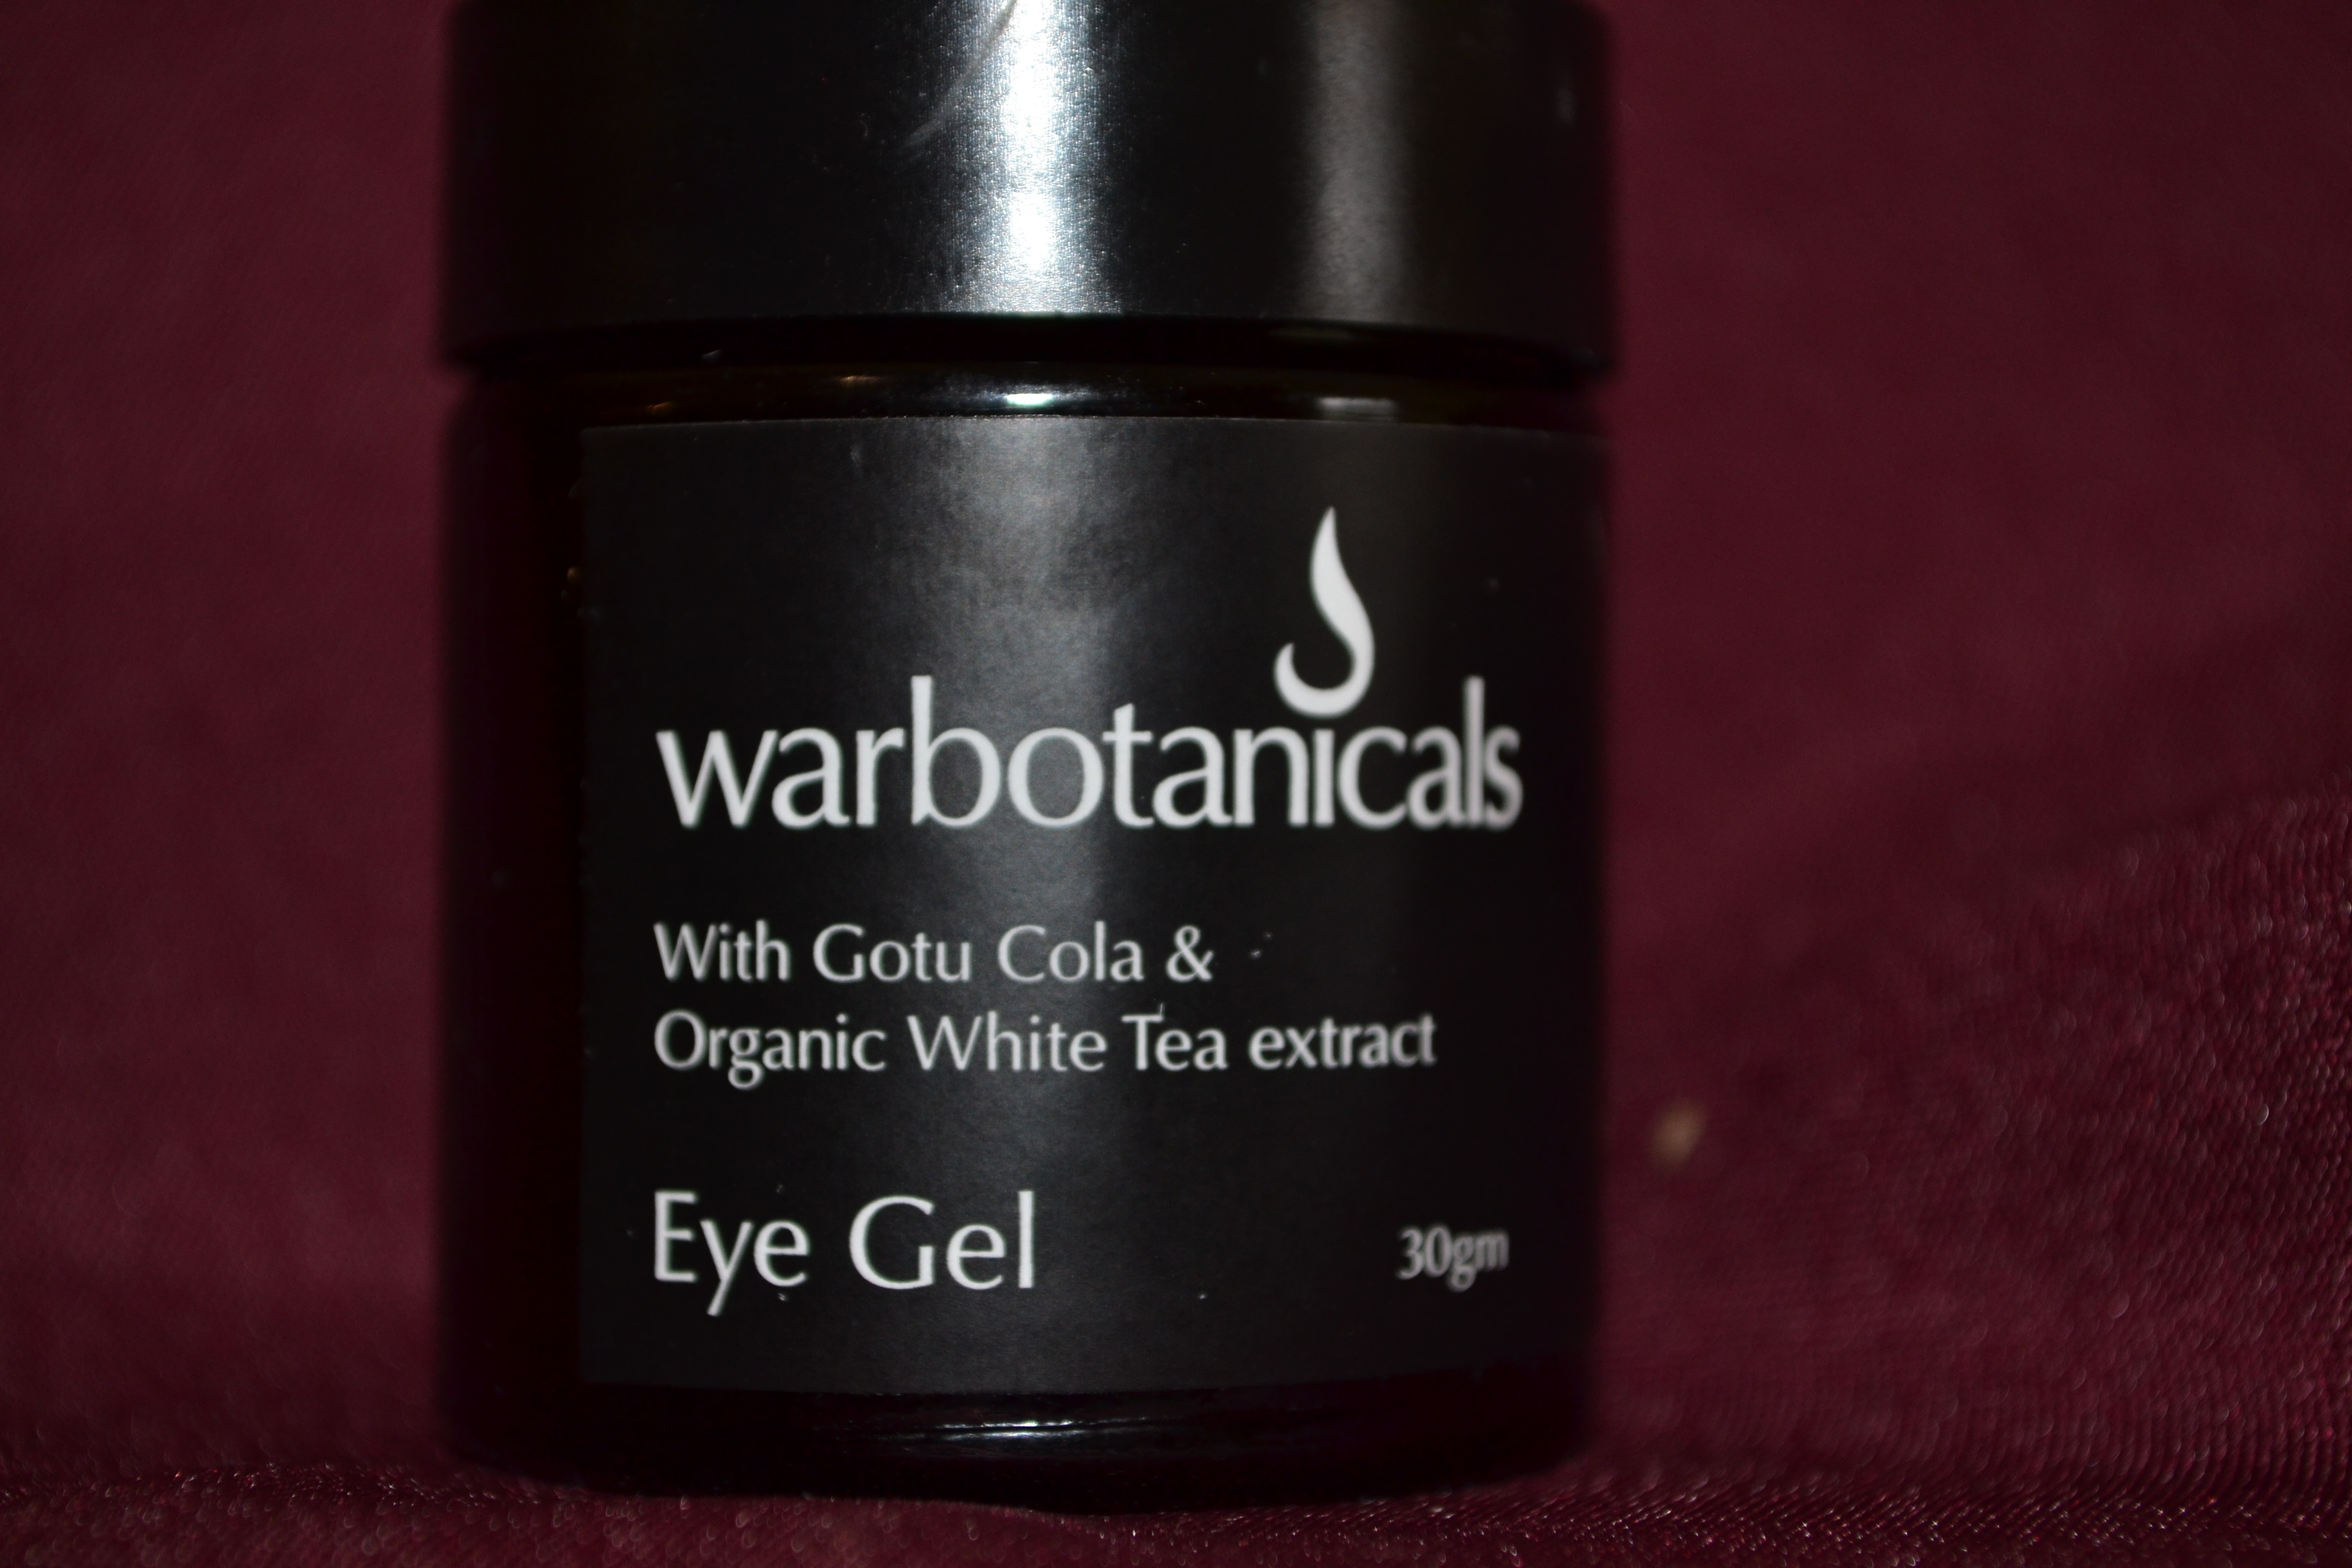 Eye Gel 30gm